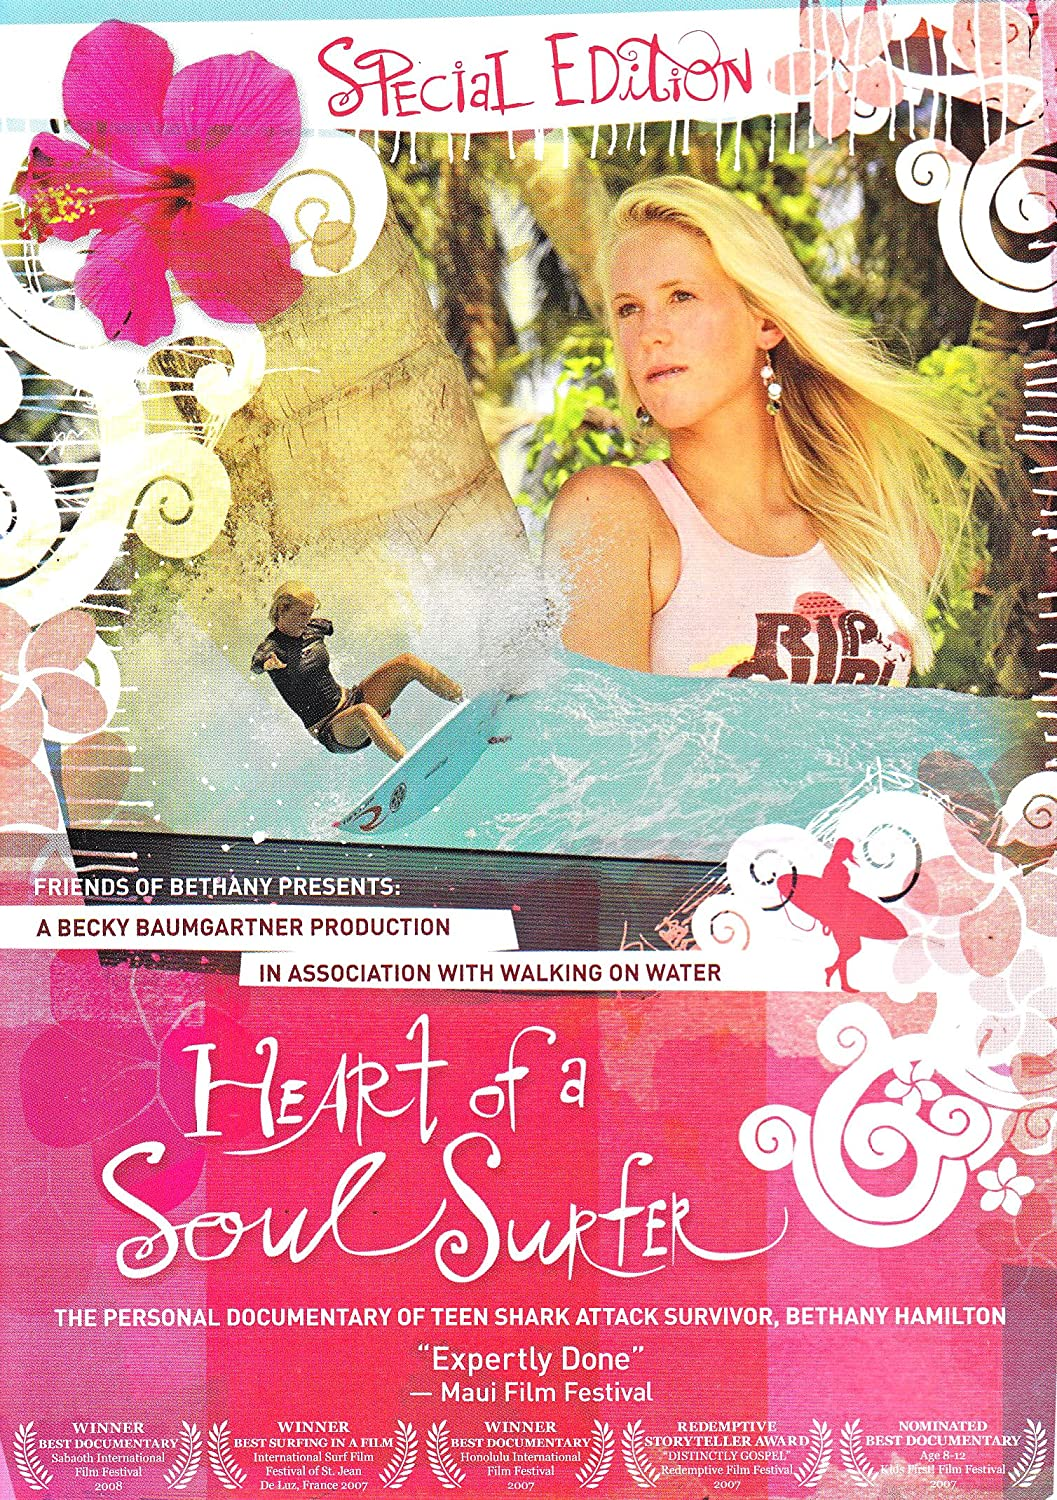 Amazon Com Heart Of A Soul Surfer Special Edition Dvd The Personal Documentary Of Teen Shark Attack Survivor Bethany Hamilton Bethany Hamilton Alana Blanchard Becky Baumgartner Becky Baumgartner Bethany Tom Noah Hamilton